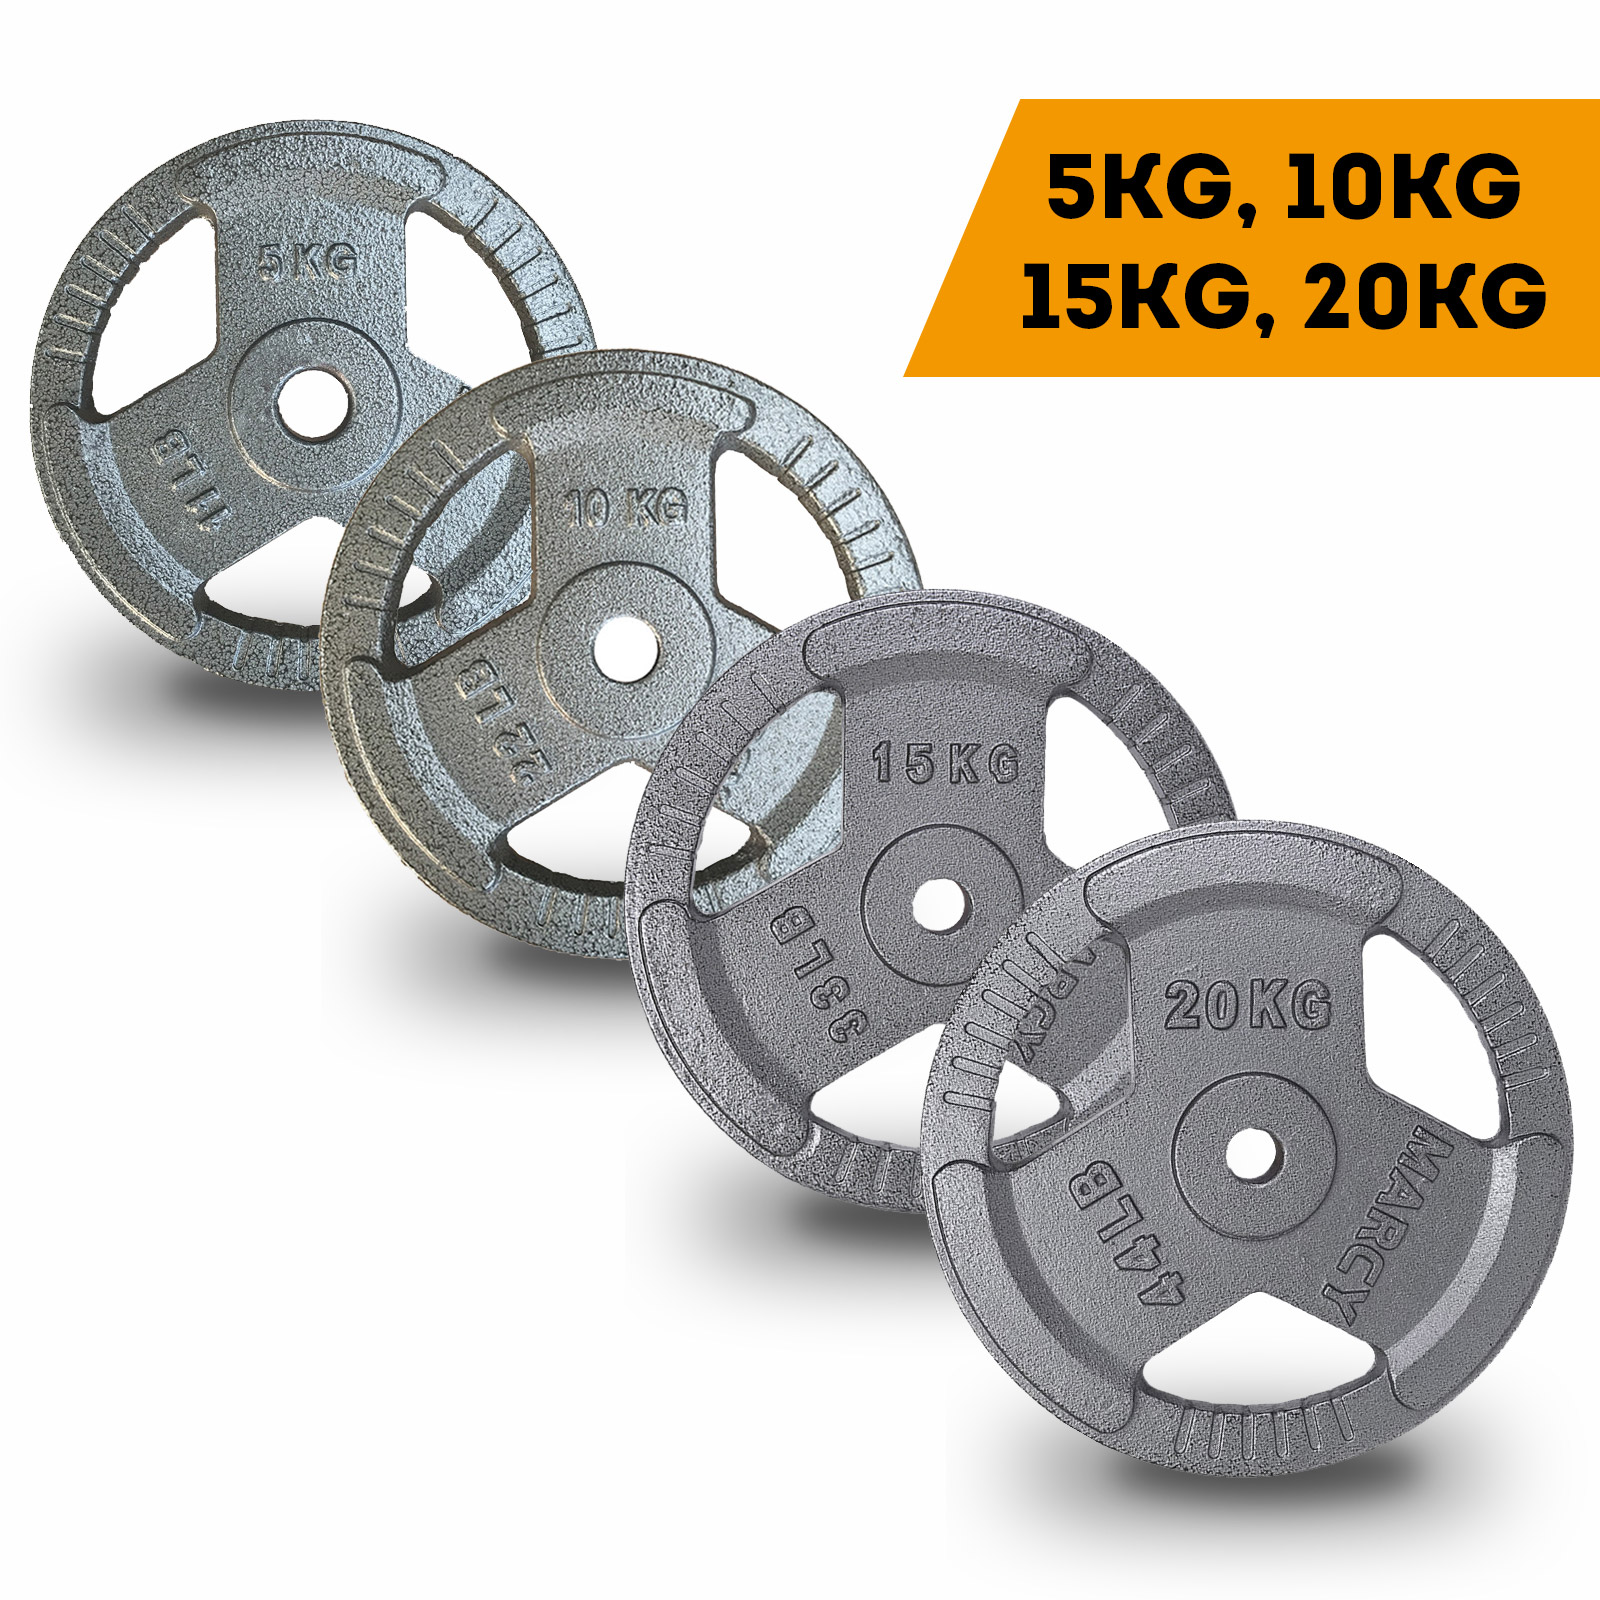 Standard Weight Plate for Barbell Dumbbell Home Gym Lifting Training